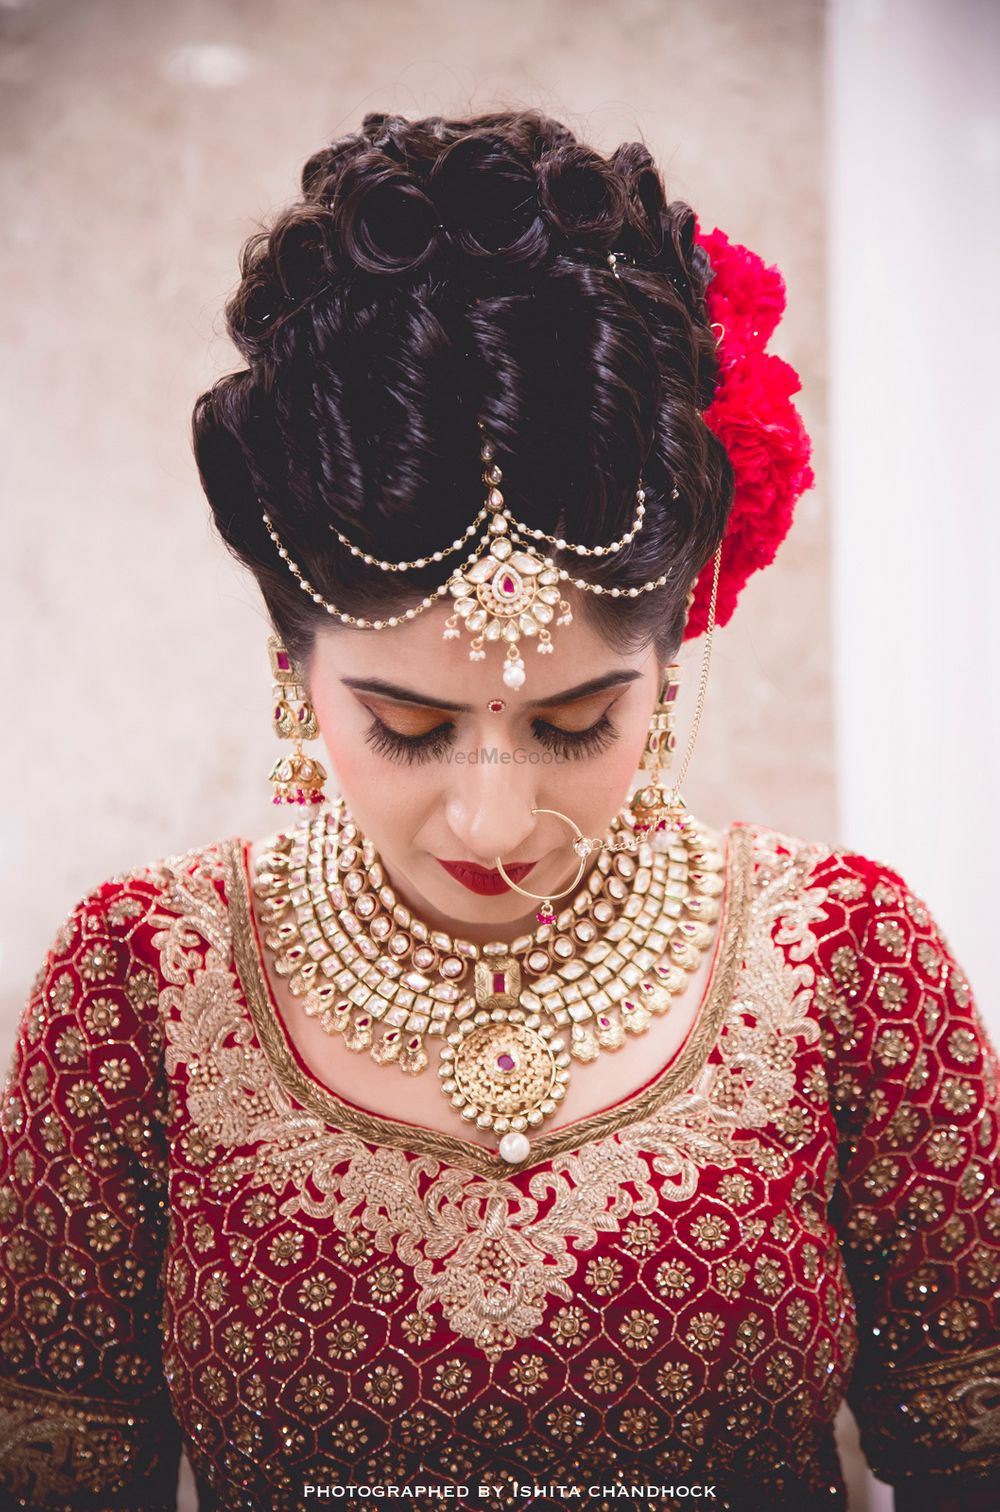 Photo of Curly Bun Bridal Hairstyle with Red Flowers on Side